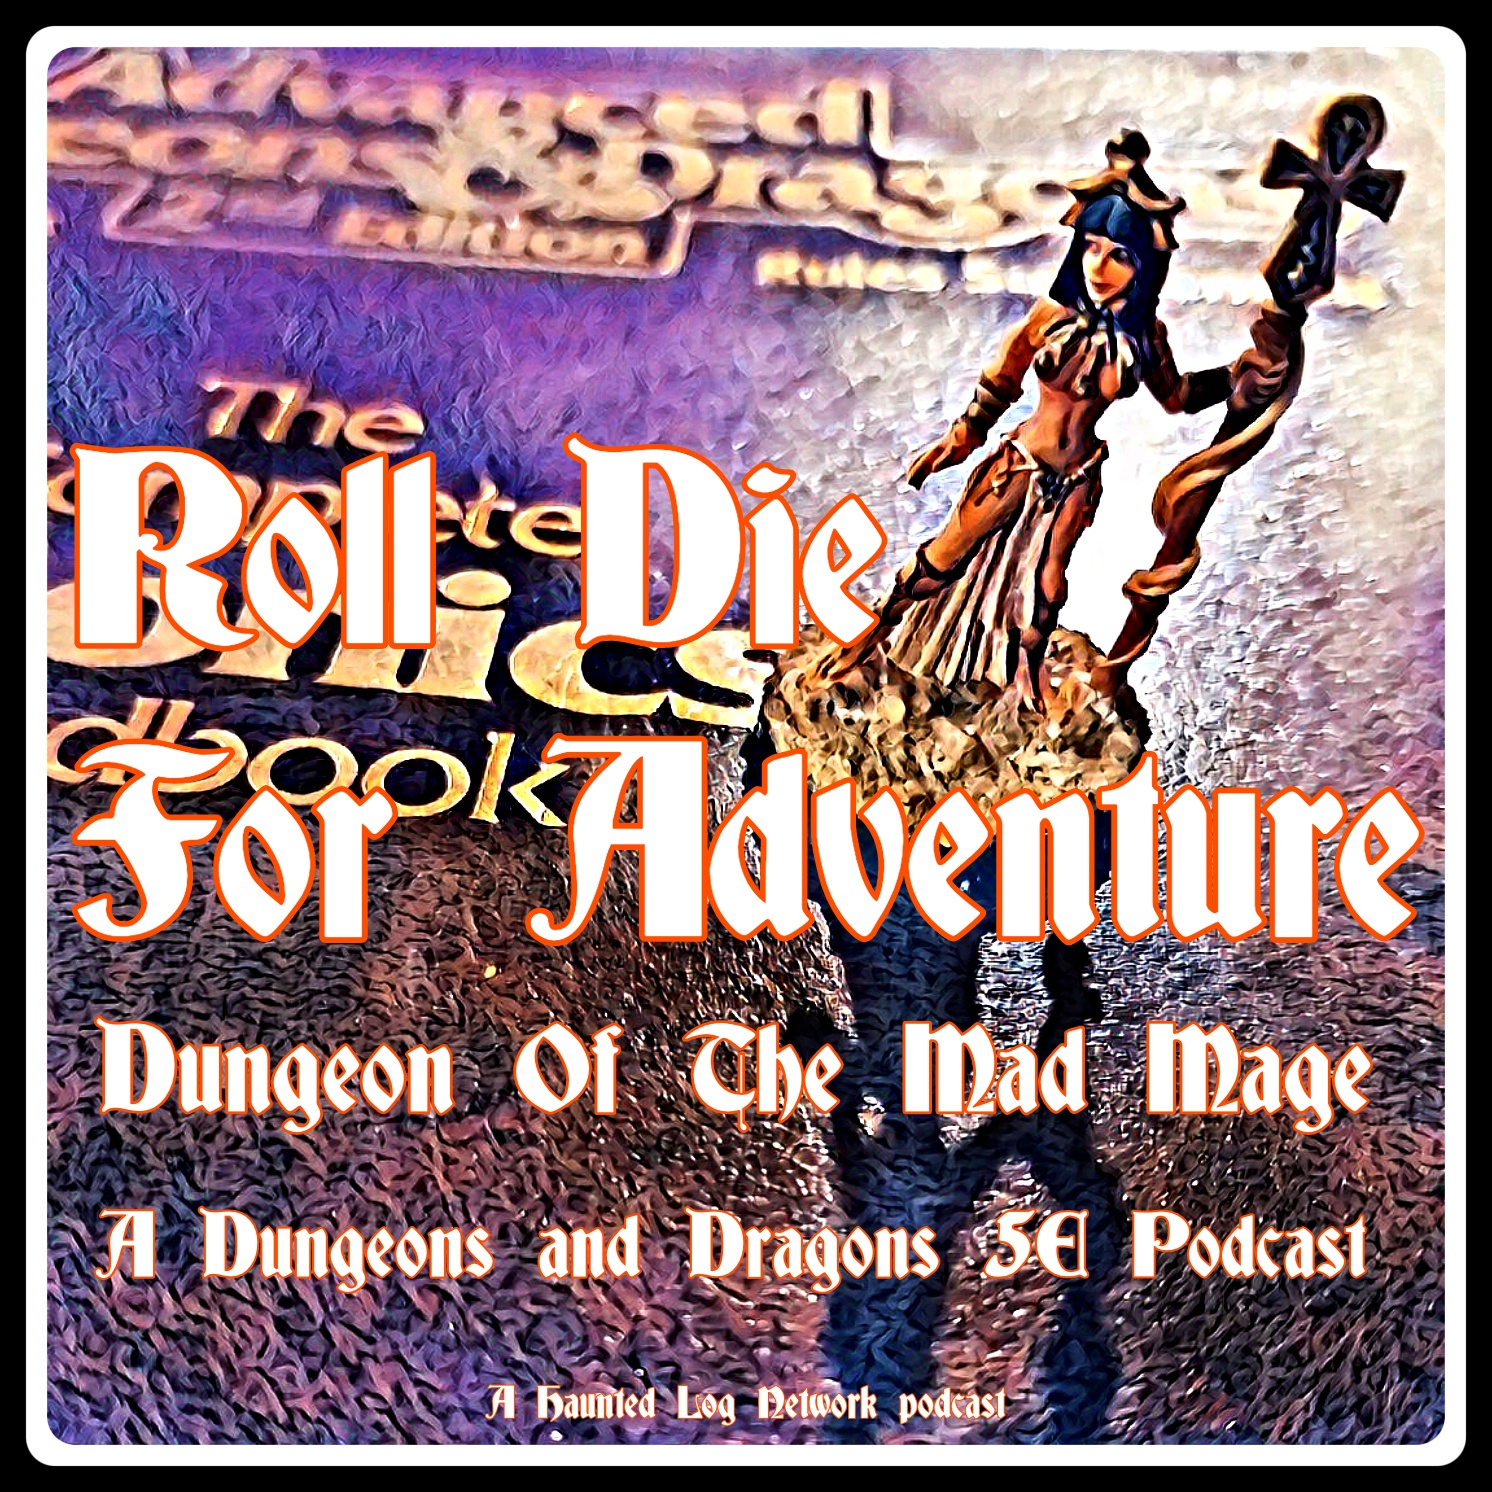 Roll Die For Adventure A Dungeons and Dragons 5e podcast Dungeon of The Mad Mage Episode 12